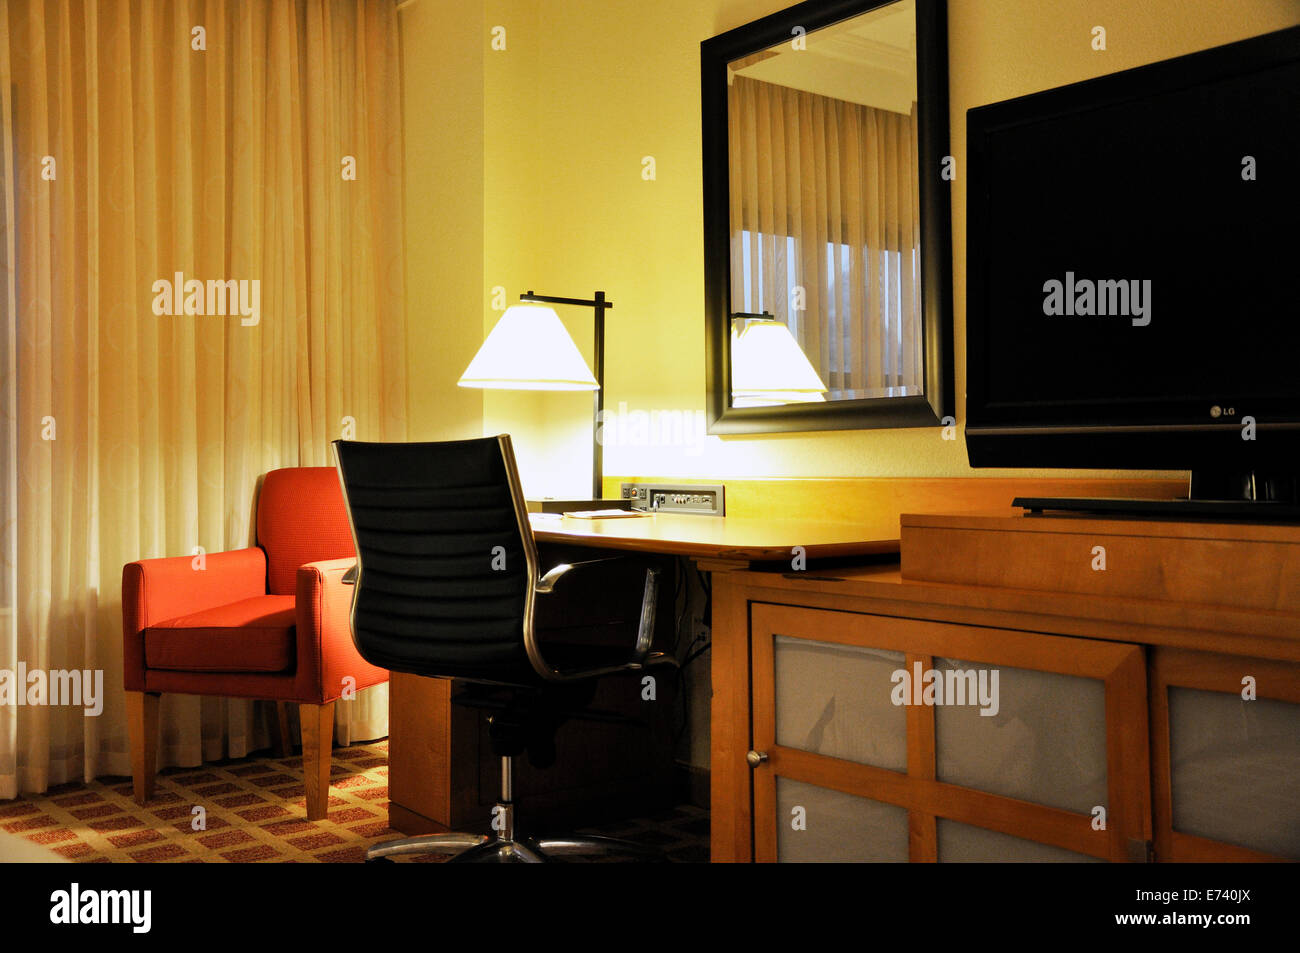 Us Hotel Chain Stock Photos Amp Us Hotel Chain Stock Images